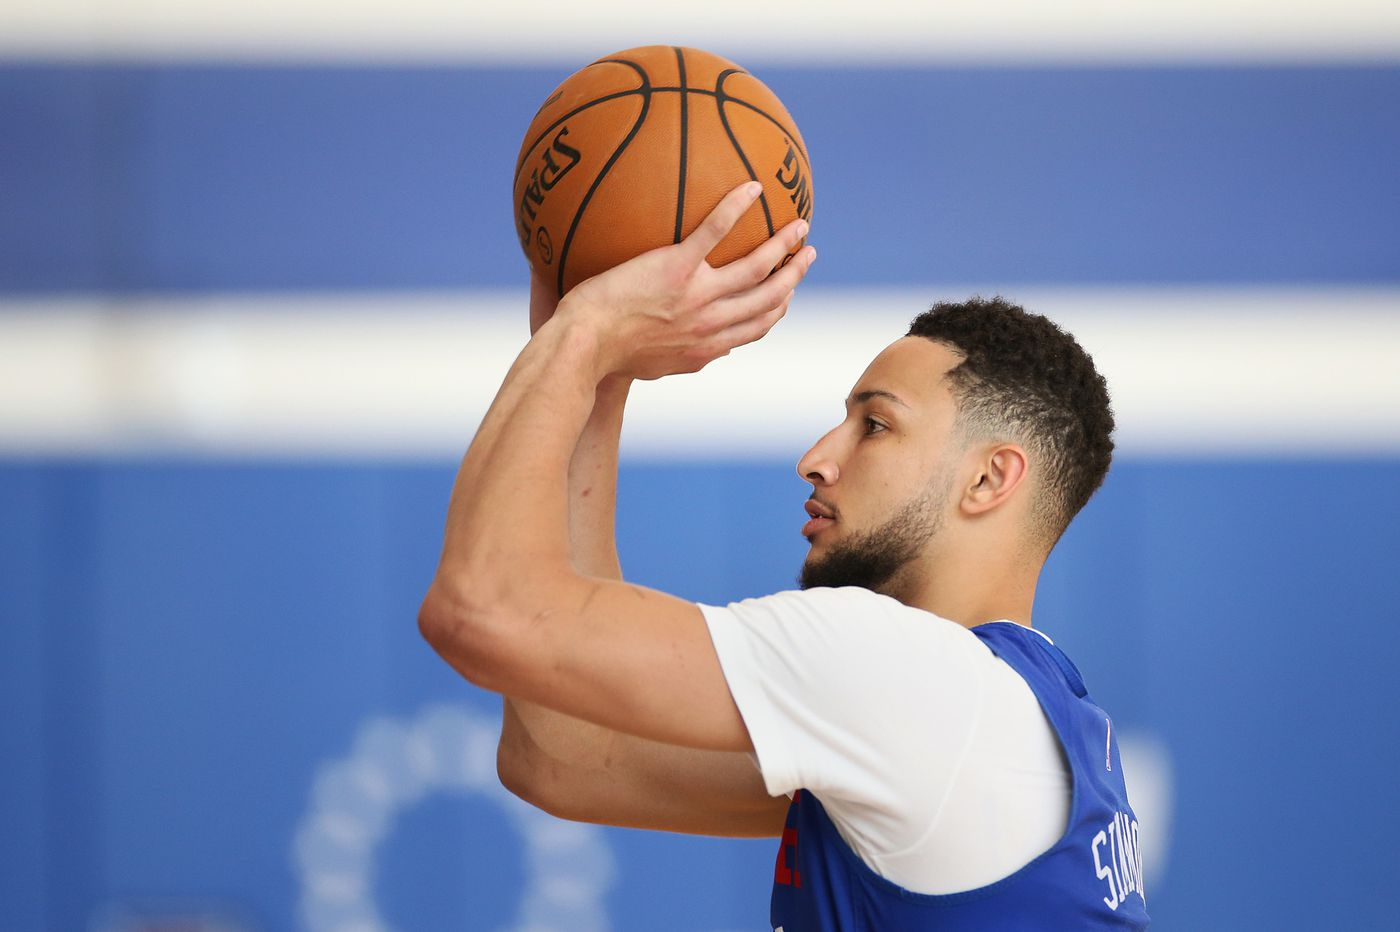 Sixers GM Elton Brand optimistic Ben Simmons will be ready to play when NBA season resumes